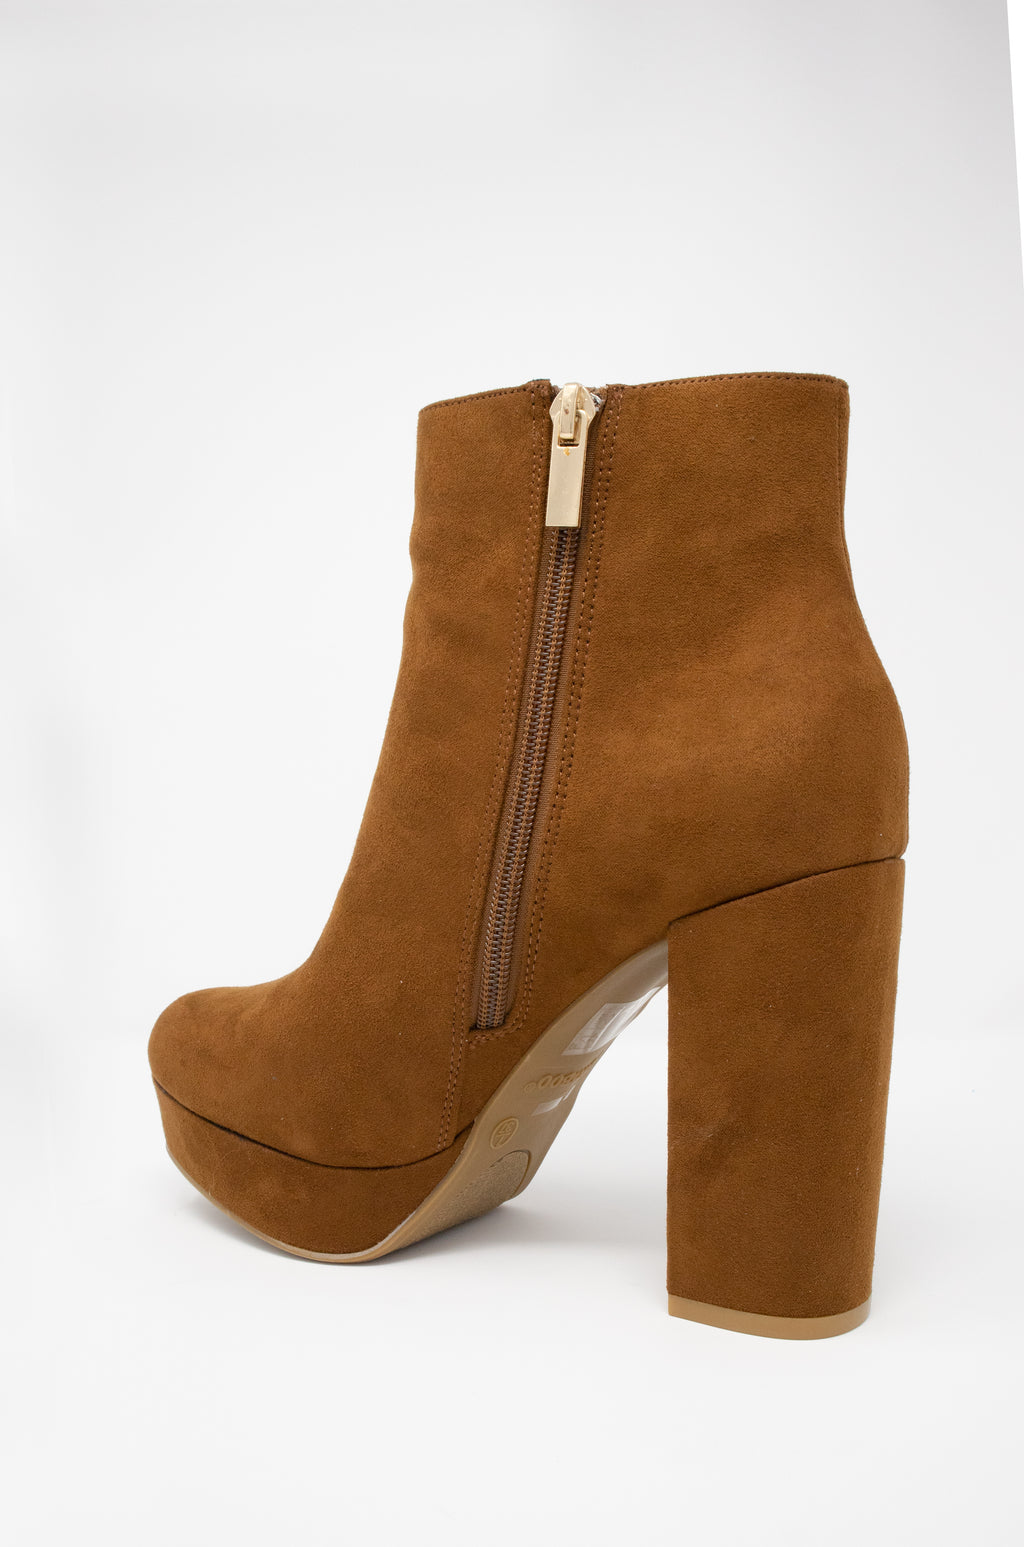 Envy - Camel Platform Heeled Booties